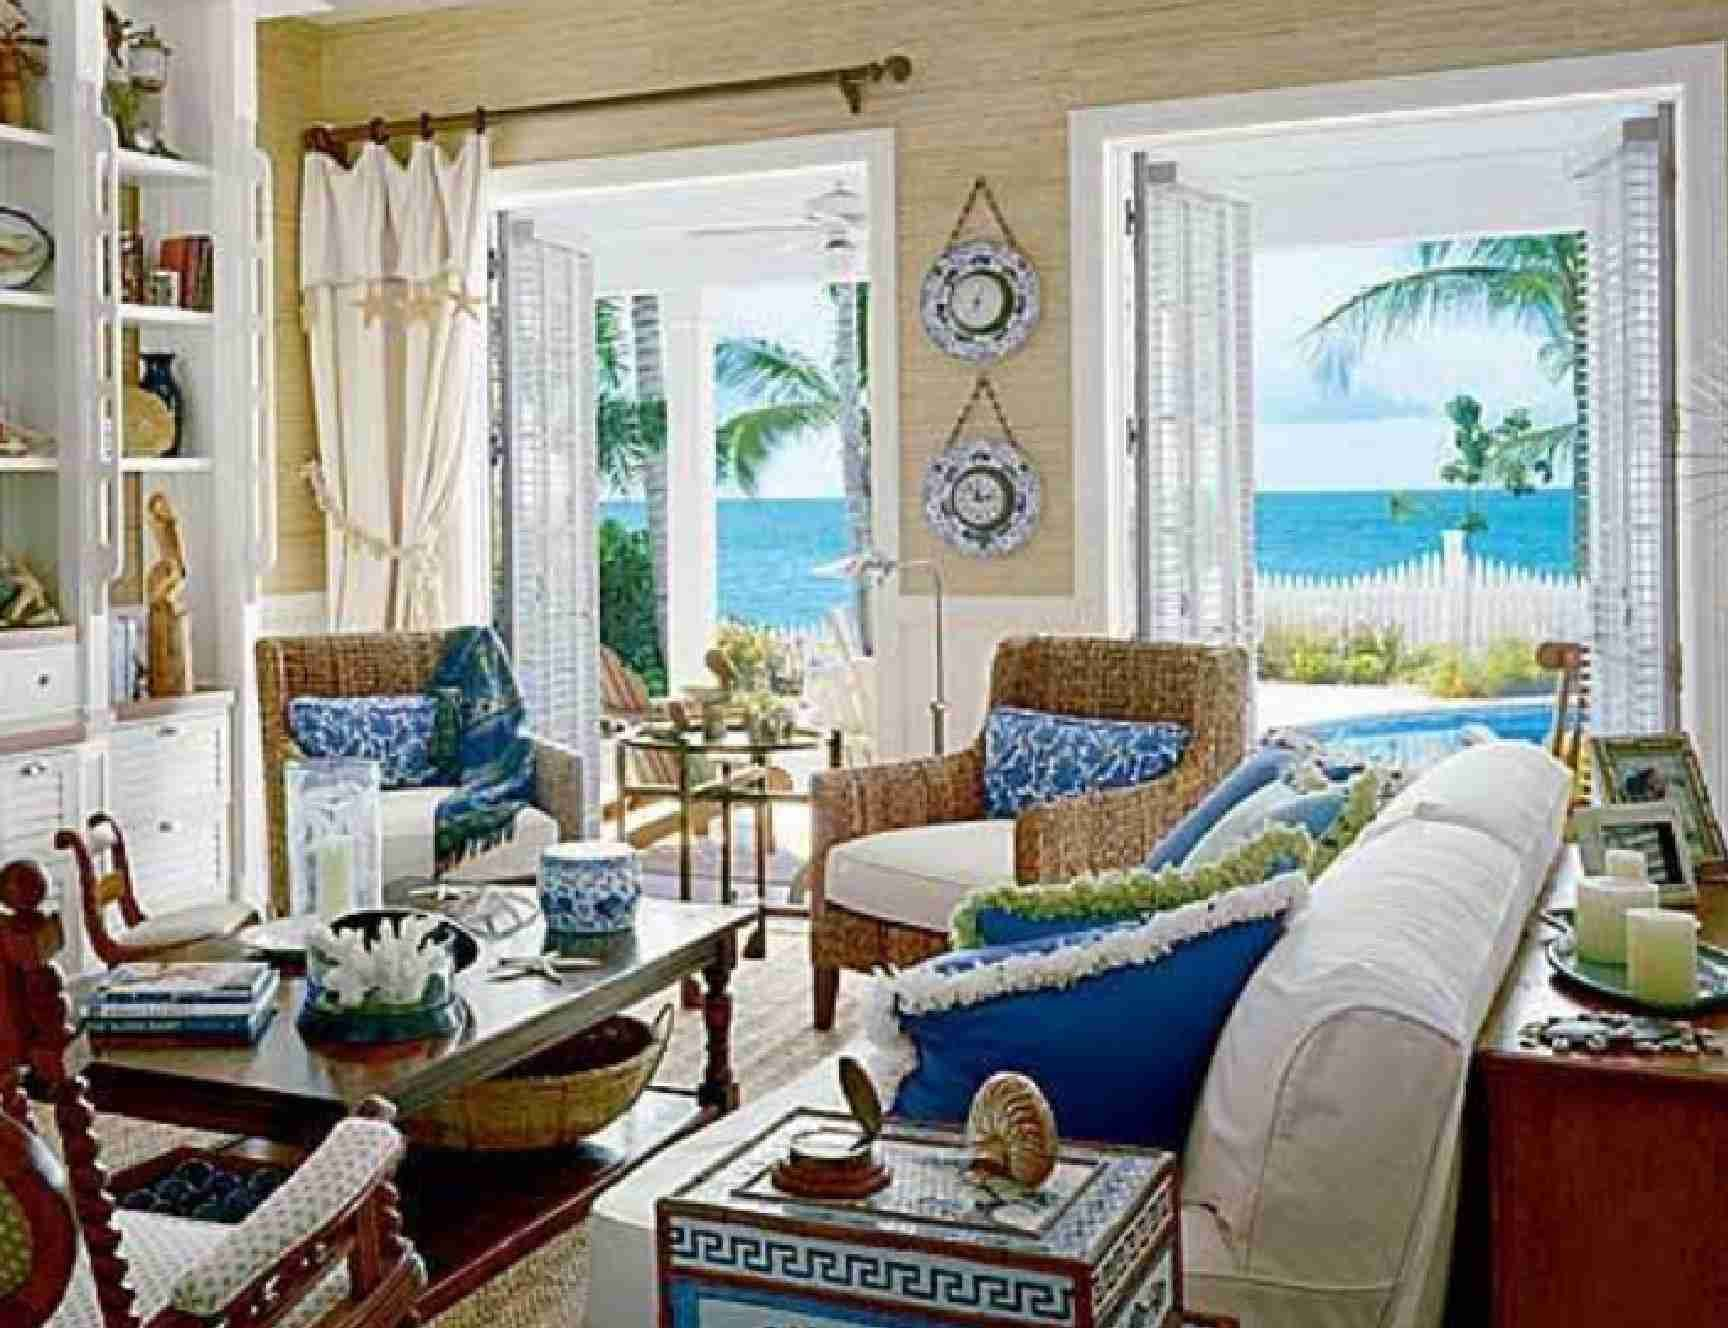 Beach Themed Living Room Design Brilliant Google Image Result For Httpwwwhomeinnenwpcontent Decorating Inspiration